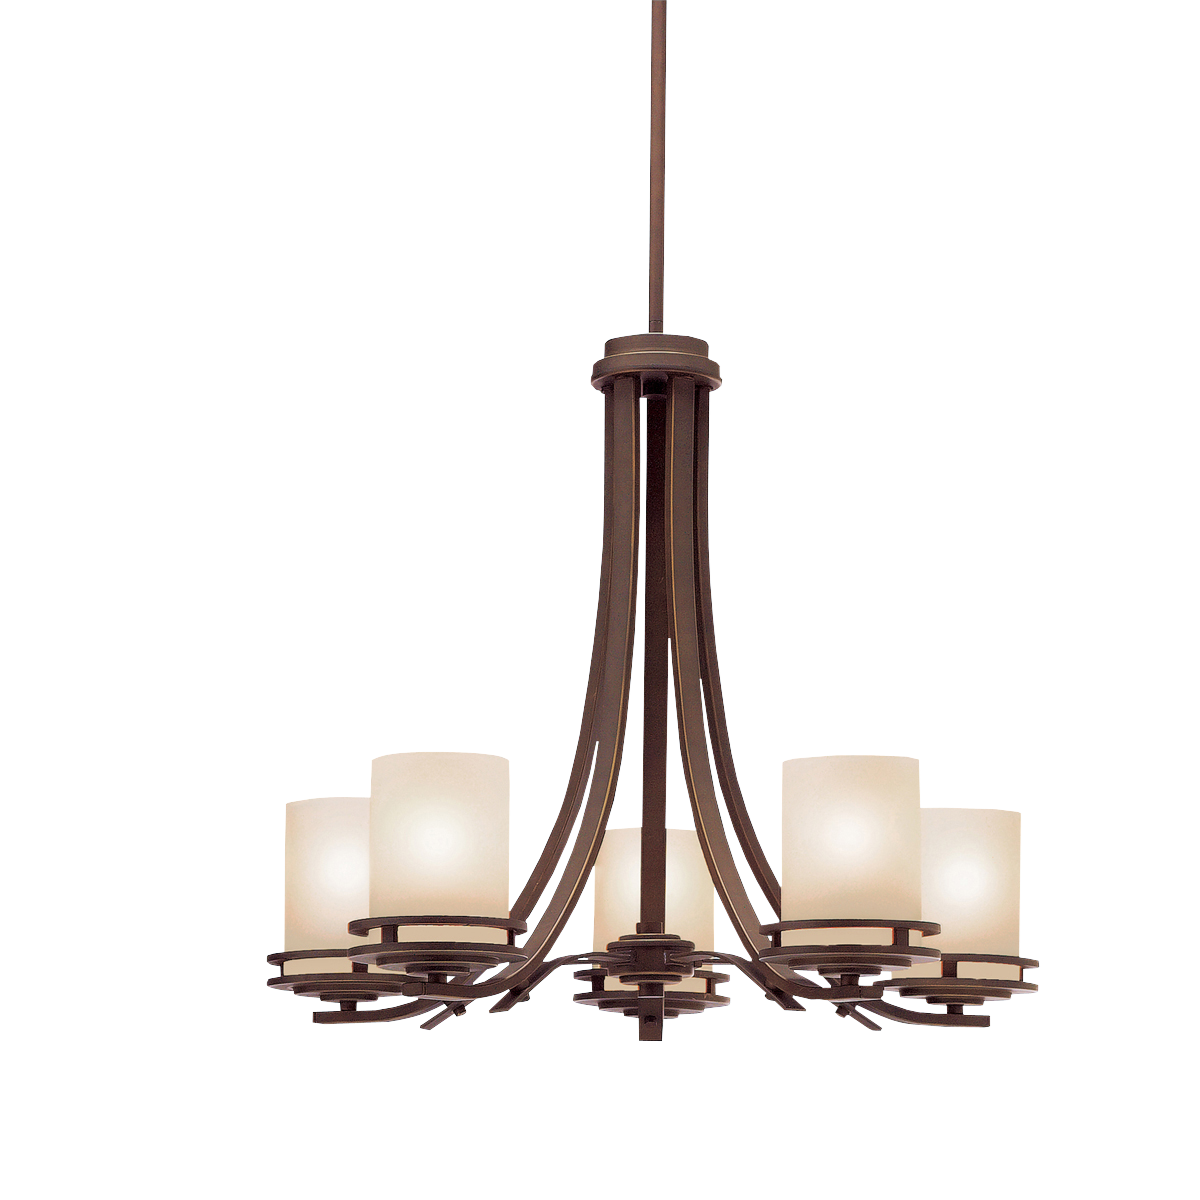 Kichler Dining Room Lighting Alluring Transitional 5 Light Chandelier In Olde Bronze  Hendrik  Kichler Review